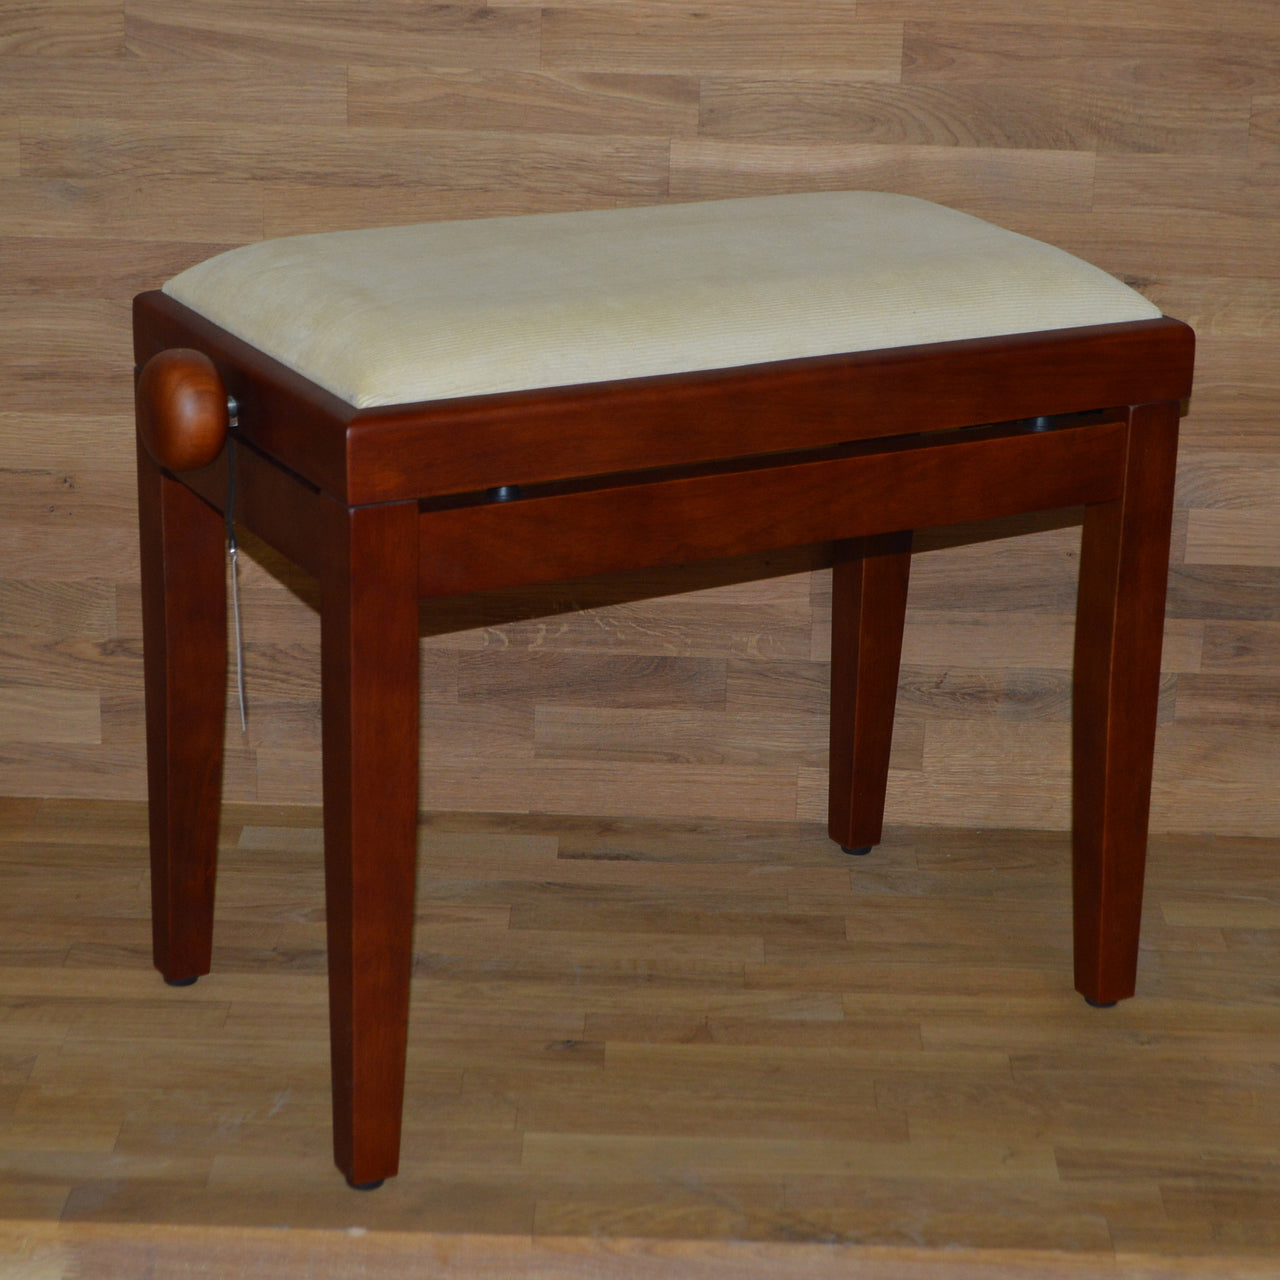 Enjoyable Cherry Matt Piano Bench Gmtry Best Dining Table And Chair Ideas Images Gmtryco